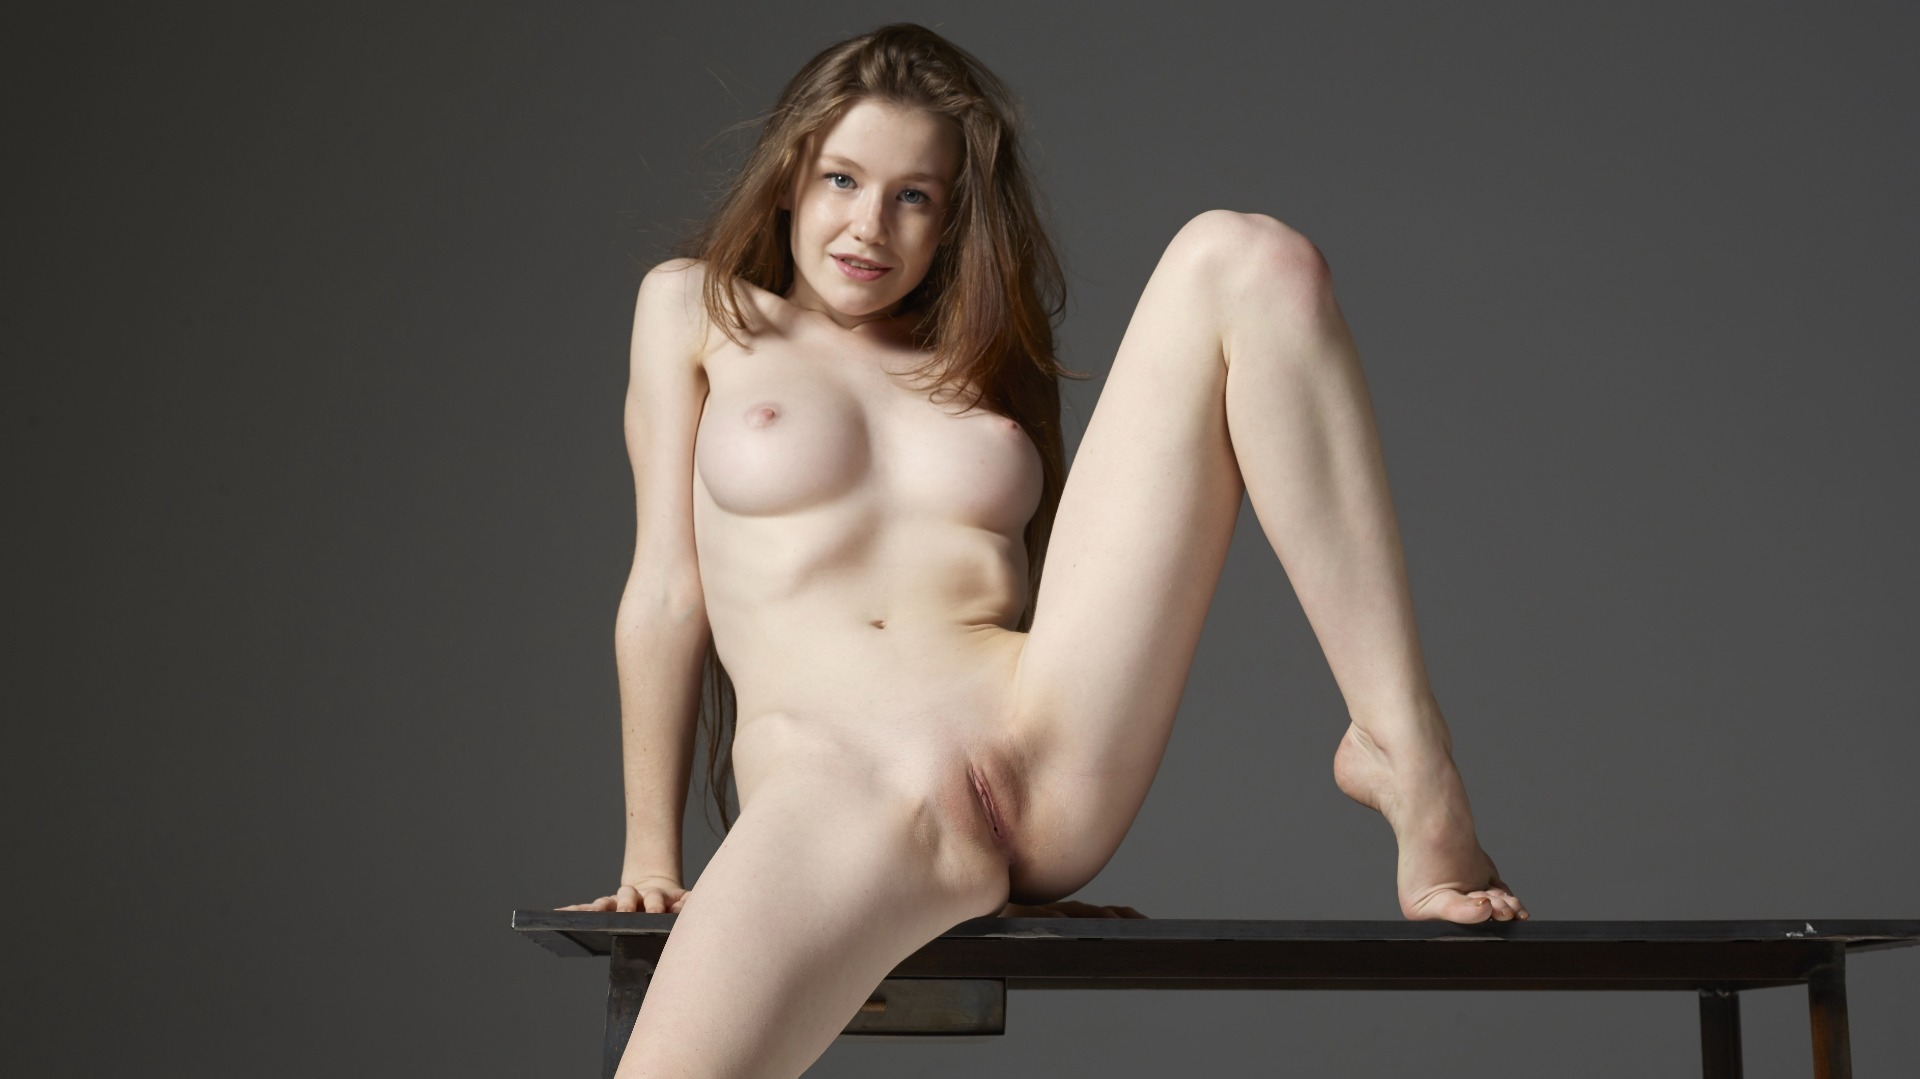 amatoriale sega in campeggio free porn movies watch #EmilyBloom #longHair #WOW #HOT #PerfectTits #beautiful #OMG #shaved